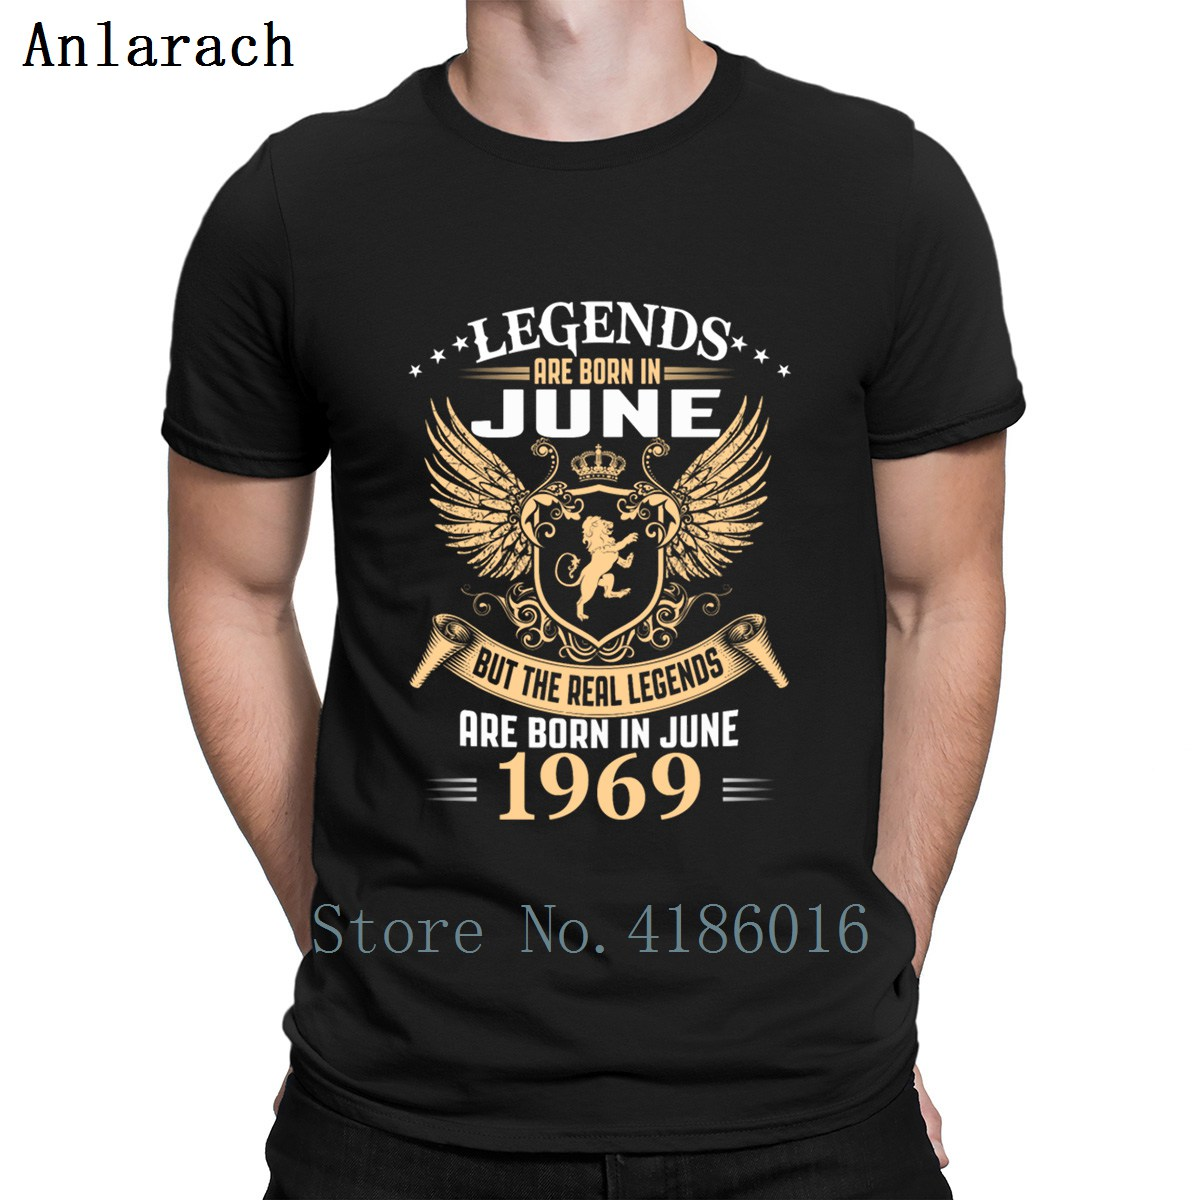 Kings Legends Are Born In June 1969   T     Shirt   Pattern Funky Pop Top Tee Funny   Shirts   Fitness Clothing Fit New Plus Size 3xl